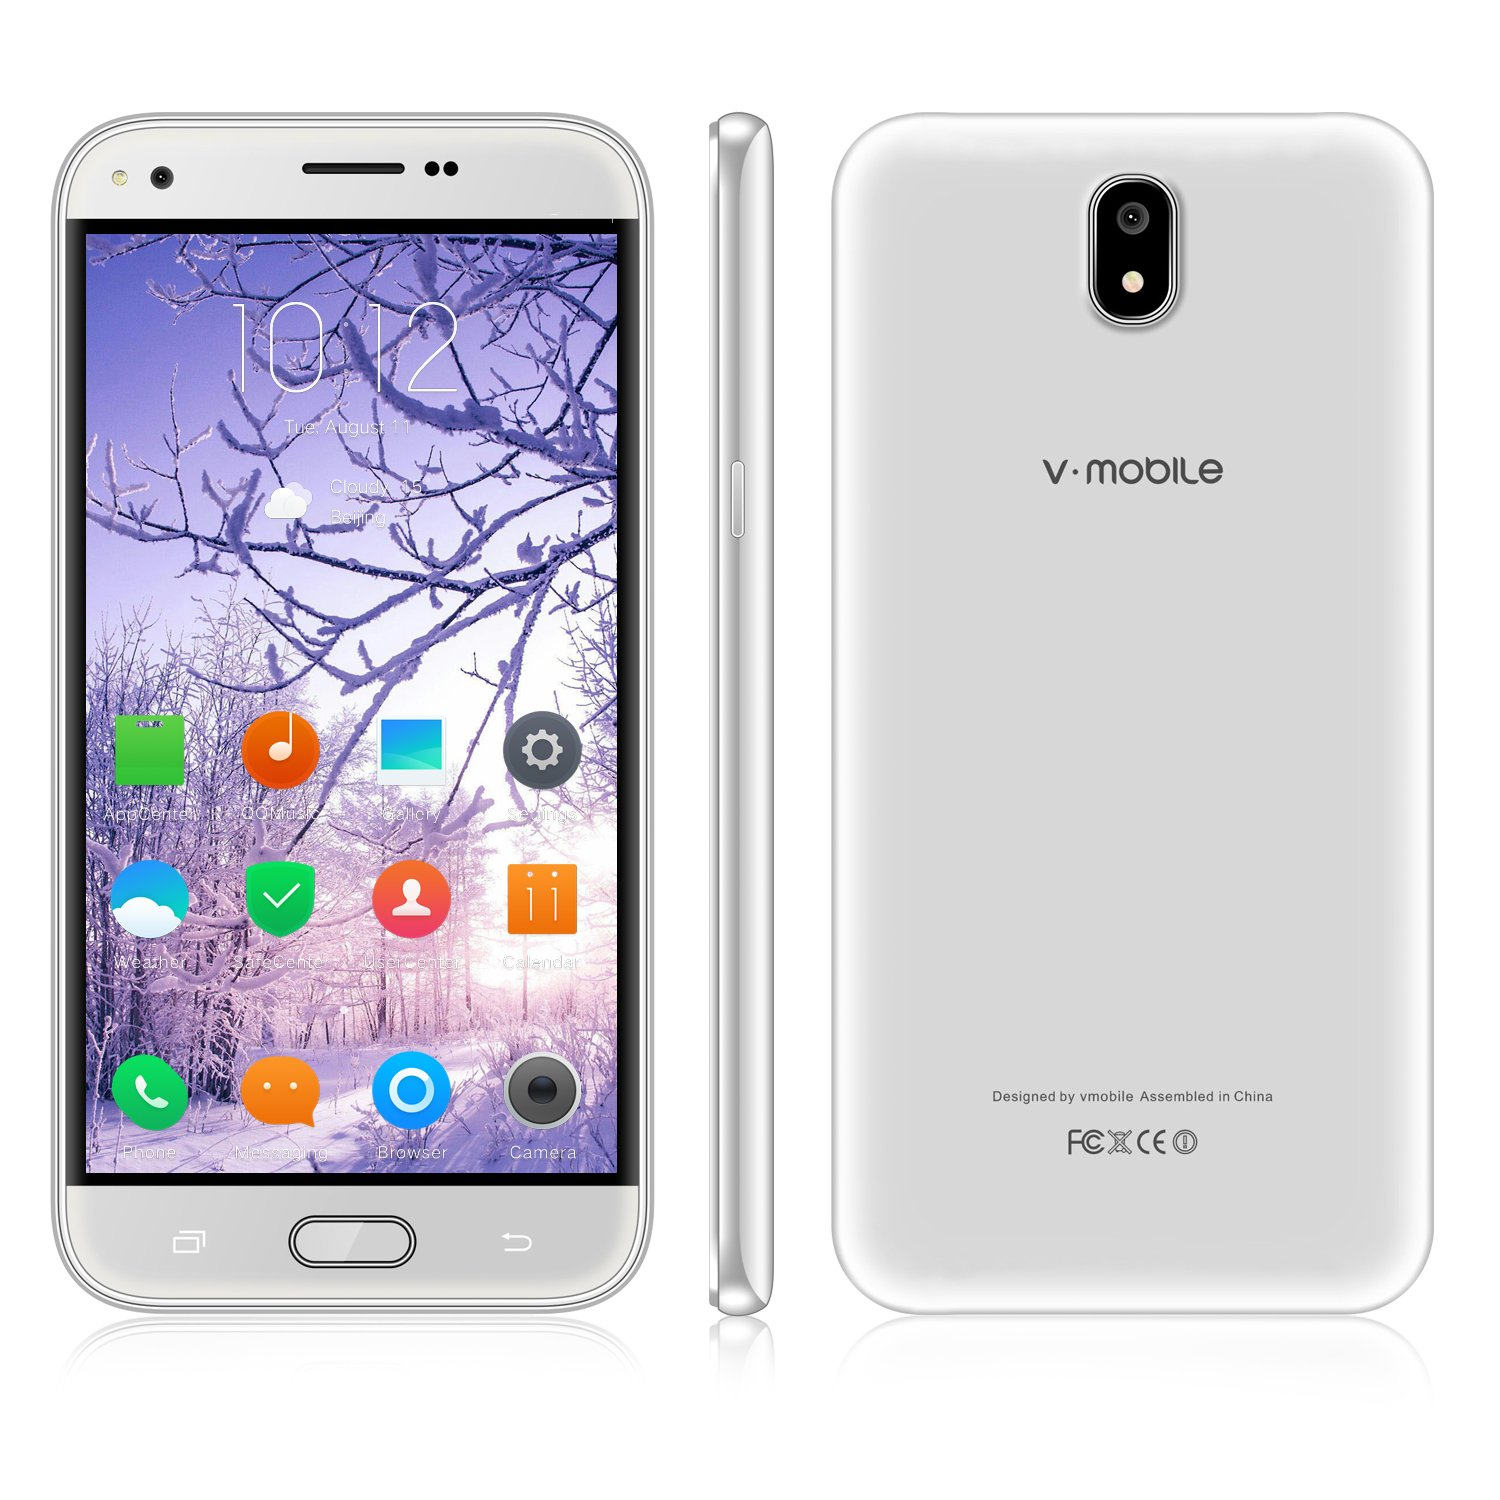 Unlocked Cell Phone,V Mobile J5-N 5.5 Inch 8GB ROM Android 7.0 Dual Sim 5MP Camera 3G Smartphone Cheap and Fine Quad-core Supports WI-FI Bluetooth GPS for at&T T-Mobile(White)